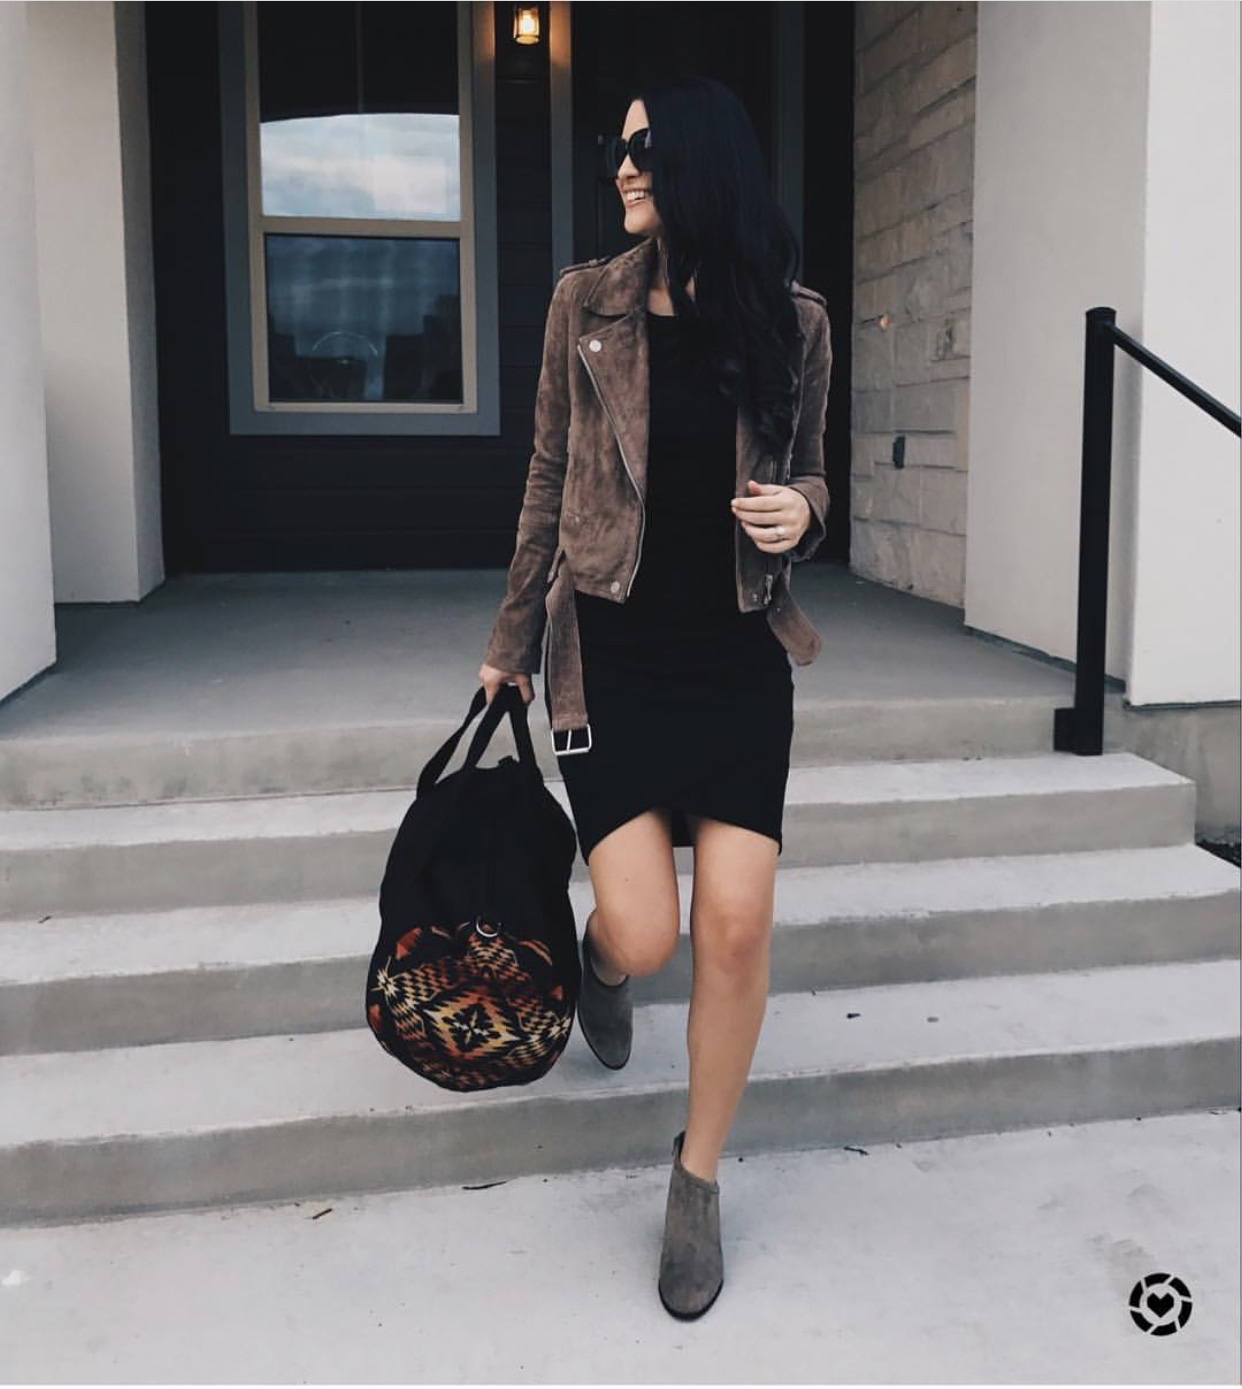 Austin Blogger DTKAustin has rounded up her favorite Fall looks from October. My best selling looks are linked and ready to easily shop.   fall fashion tips   fall outfit ideas   fall style tips   what to wear for fall   cool weather fashion   fashion for fall   style tips for fall   outfit ideas for fall    Dressed to Kill #fallstyle #fashion #fashionblogger